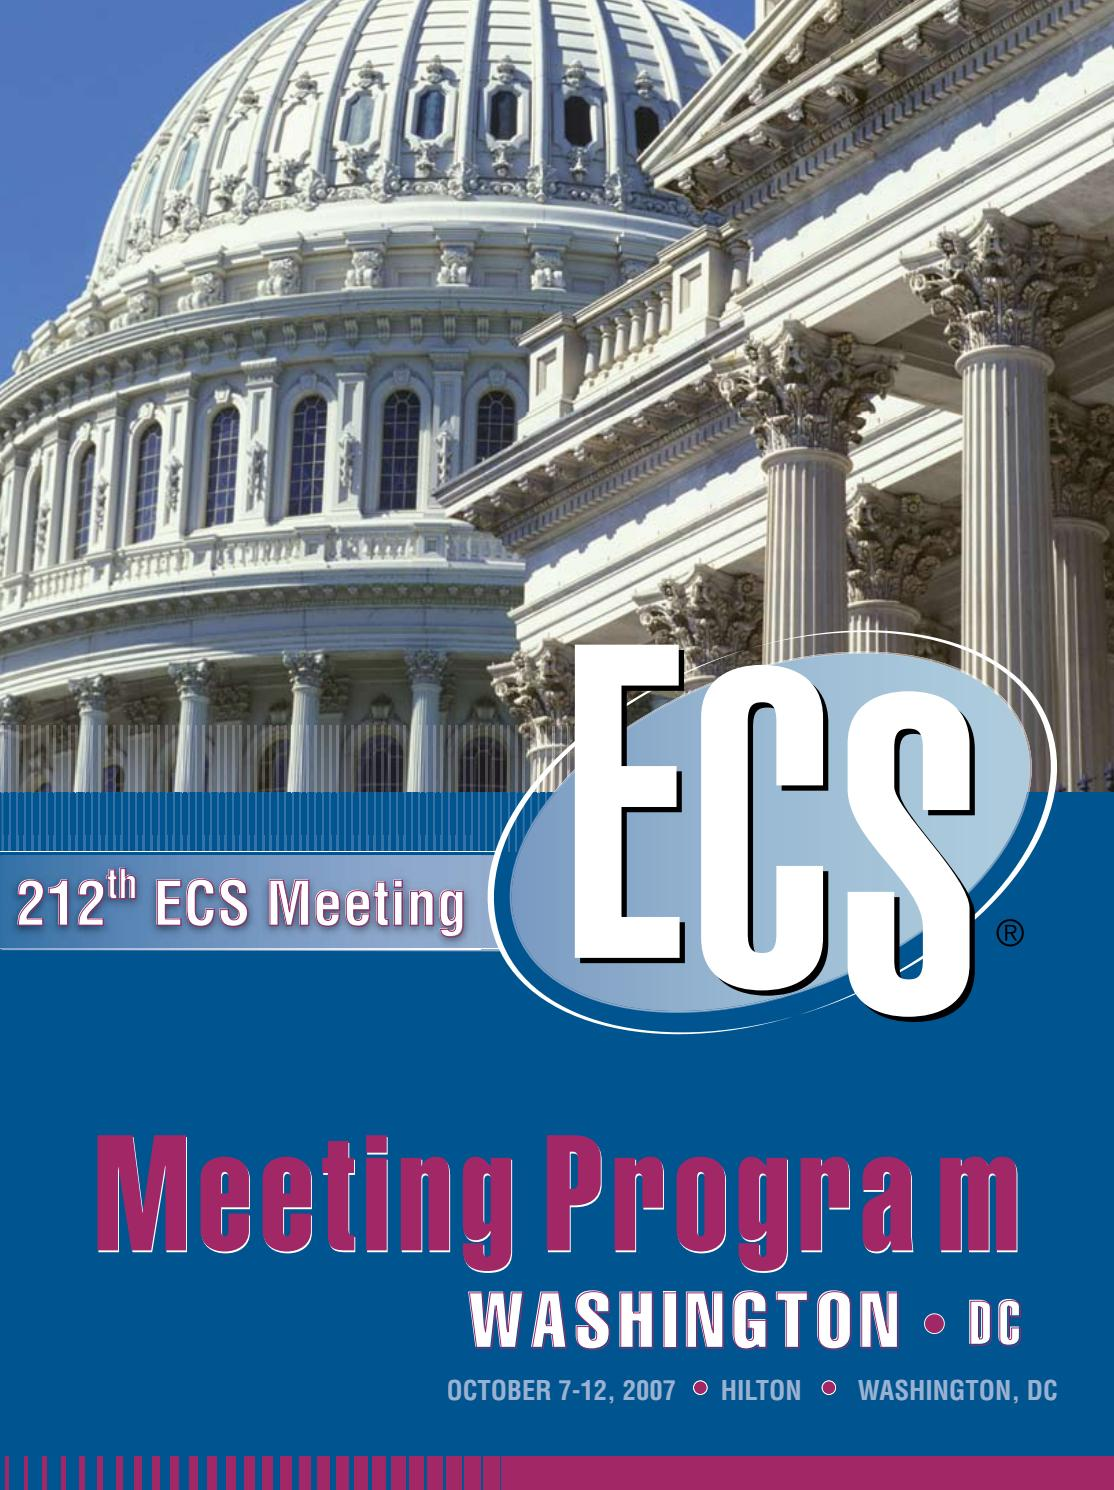 212th Ecs Meeting Program By The Electrochemical Society This Shows Top In Vivo Flexible Large Scale Integrated Circuits Lsi Issuu